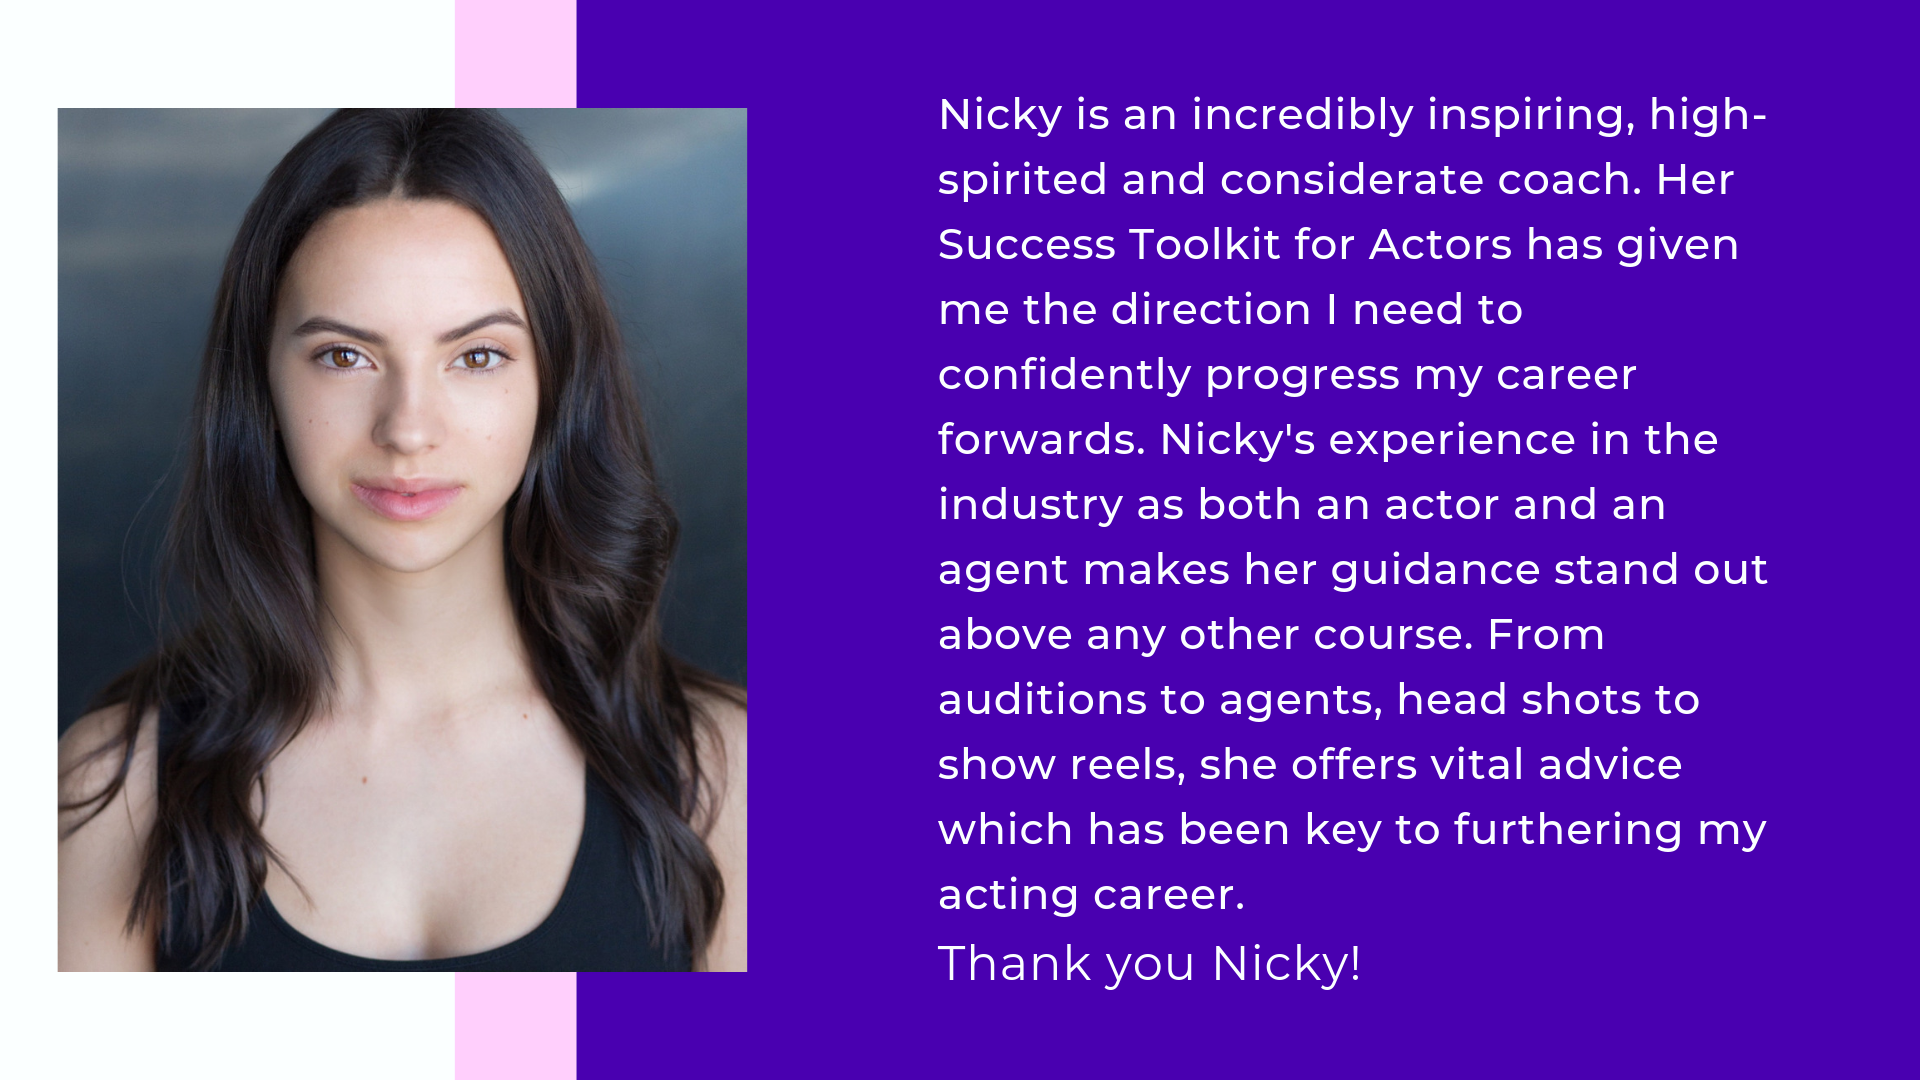 Testimonial for Nicky Raby/ Success toolkit for actors